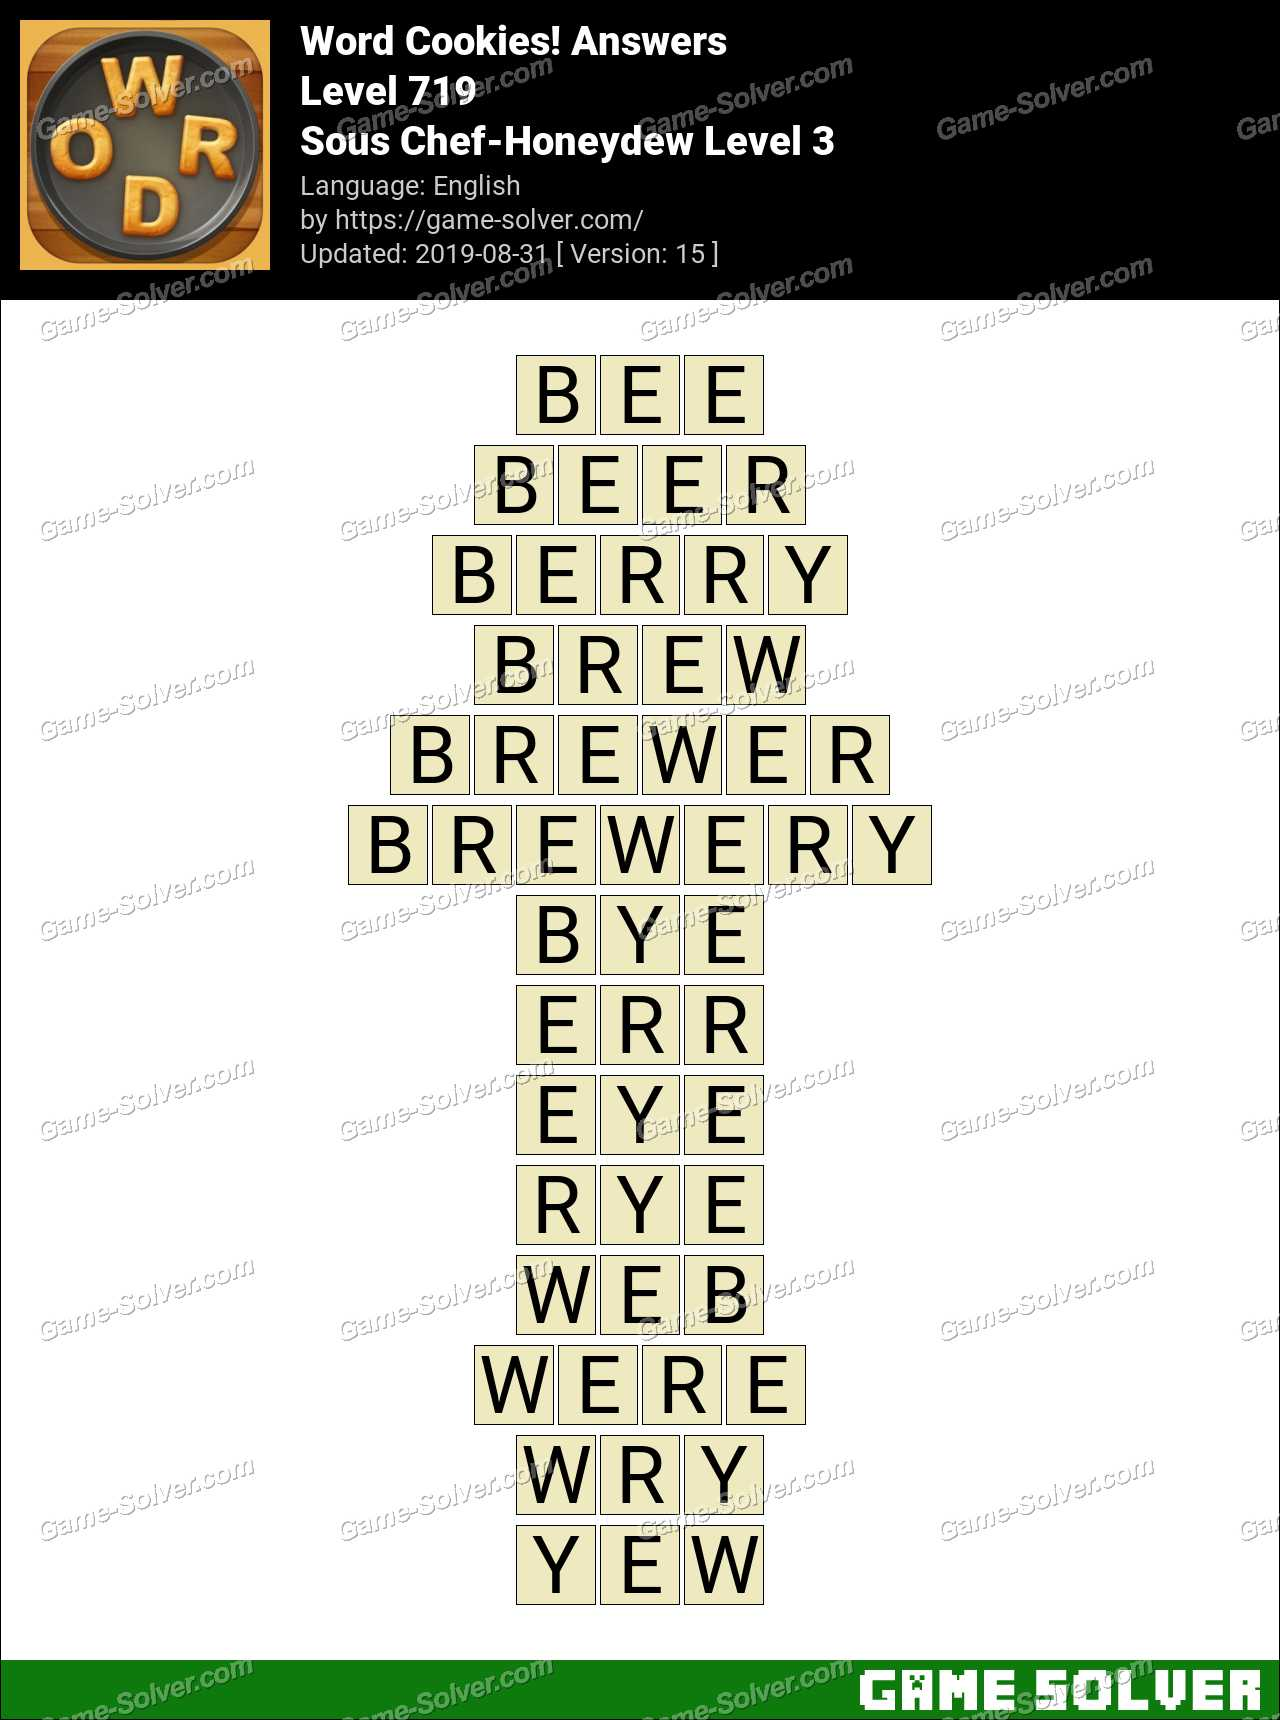 Word Cookies Sous Chef-Honeydew Level 3 Answers